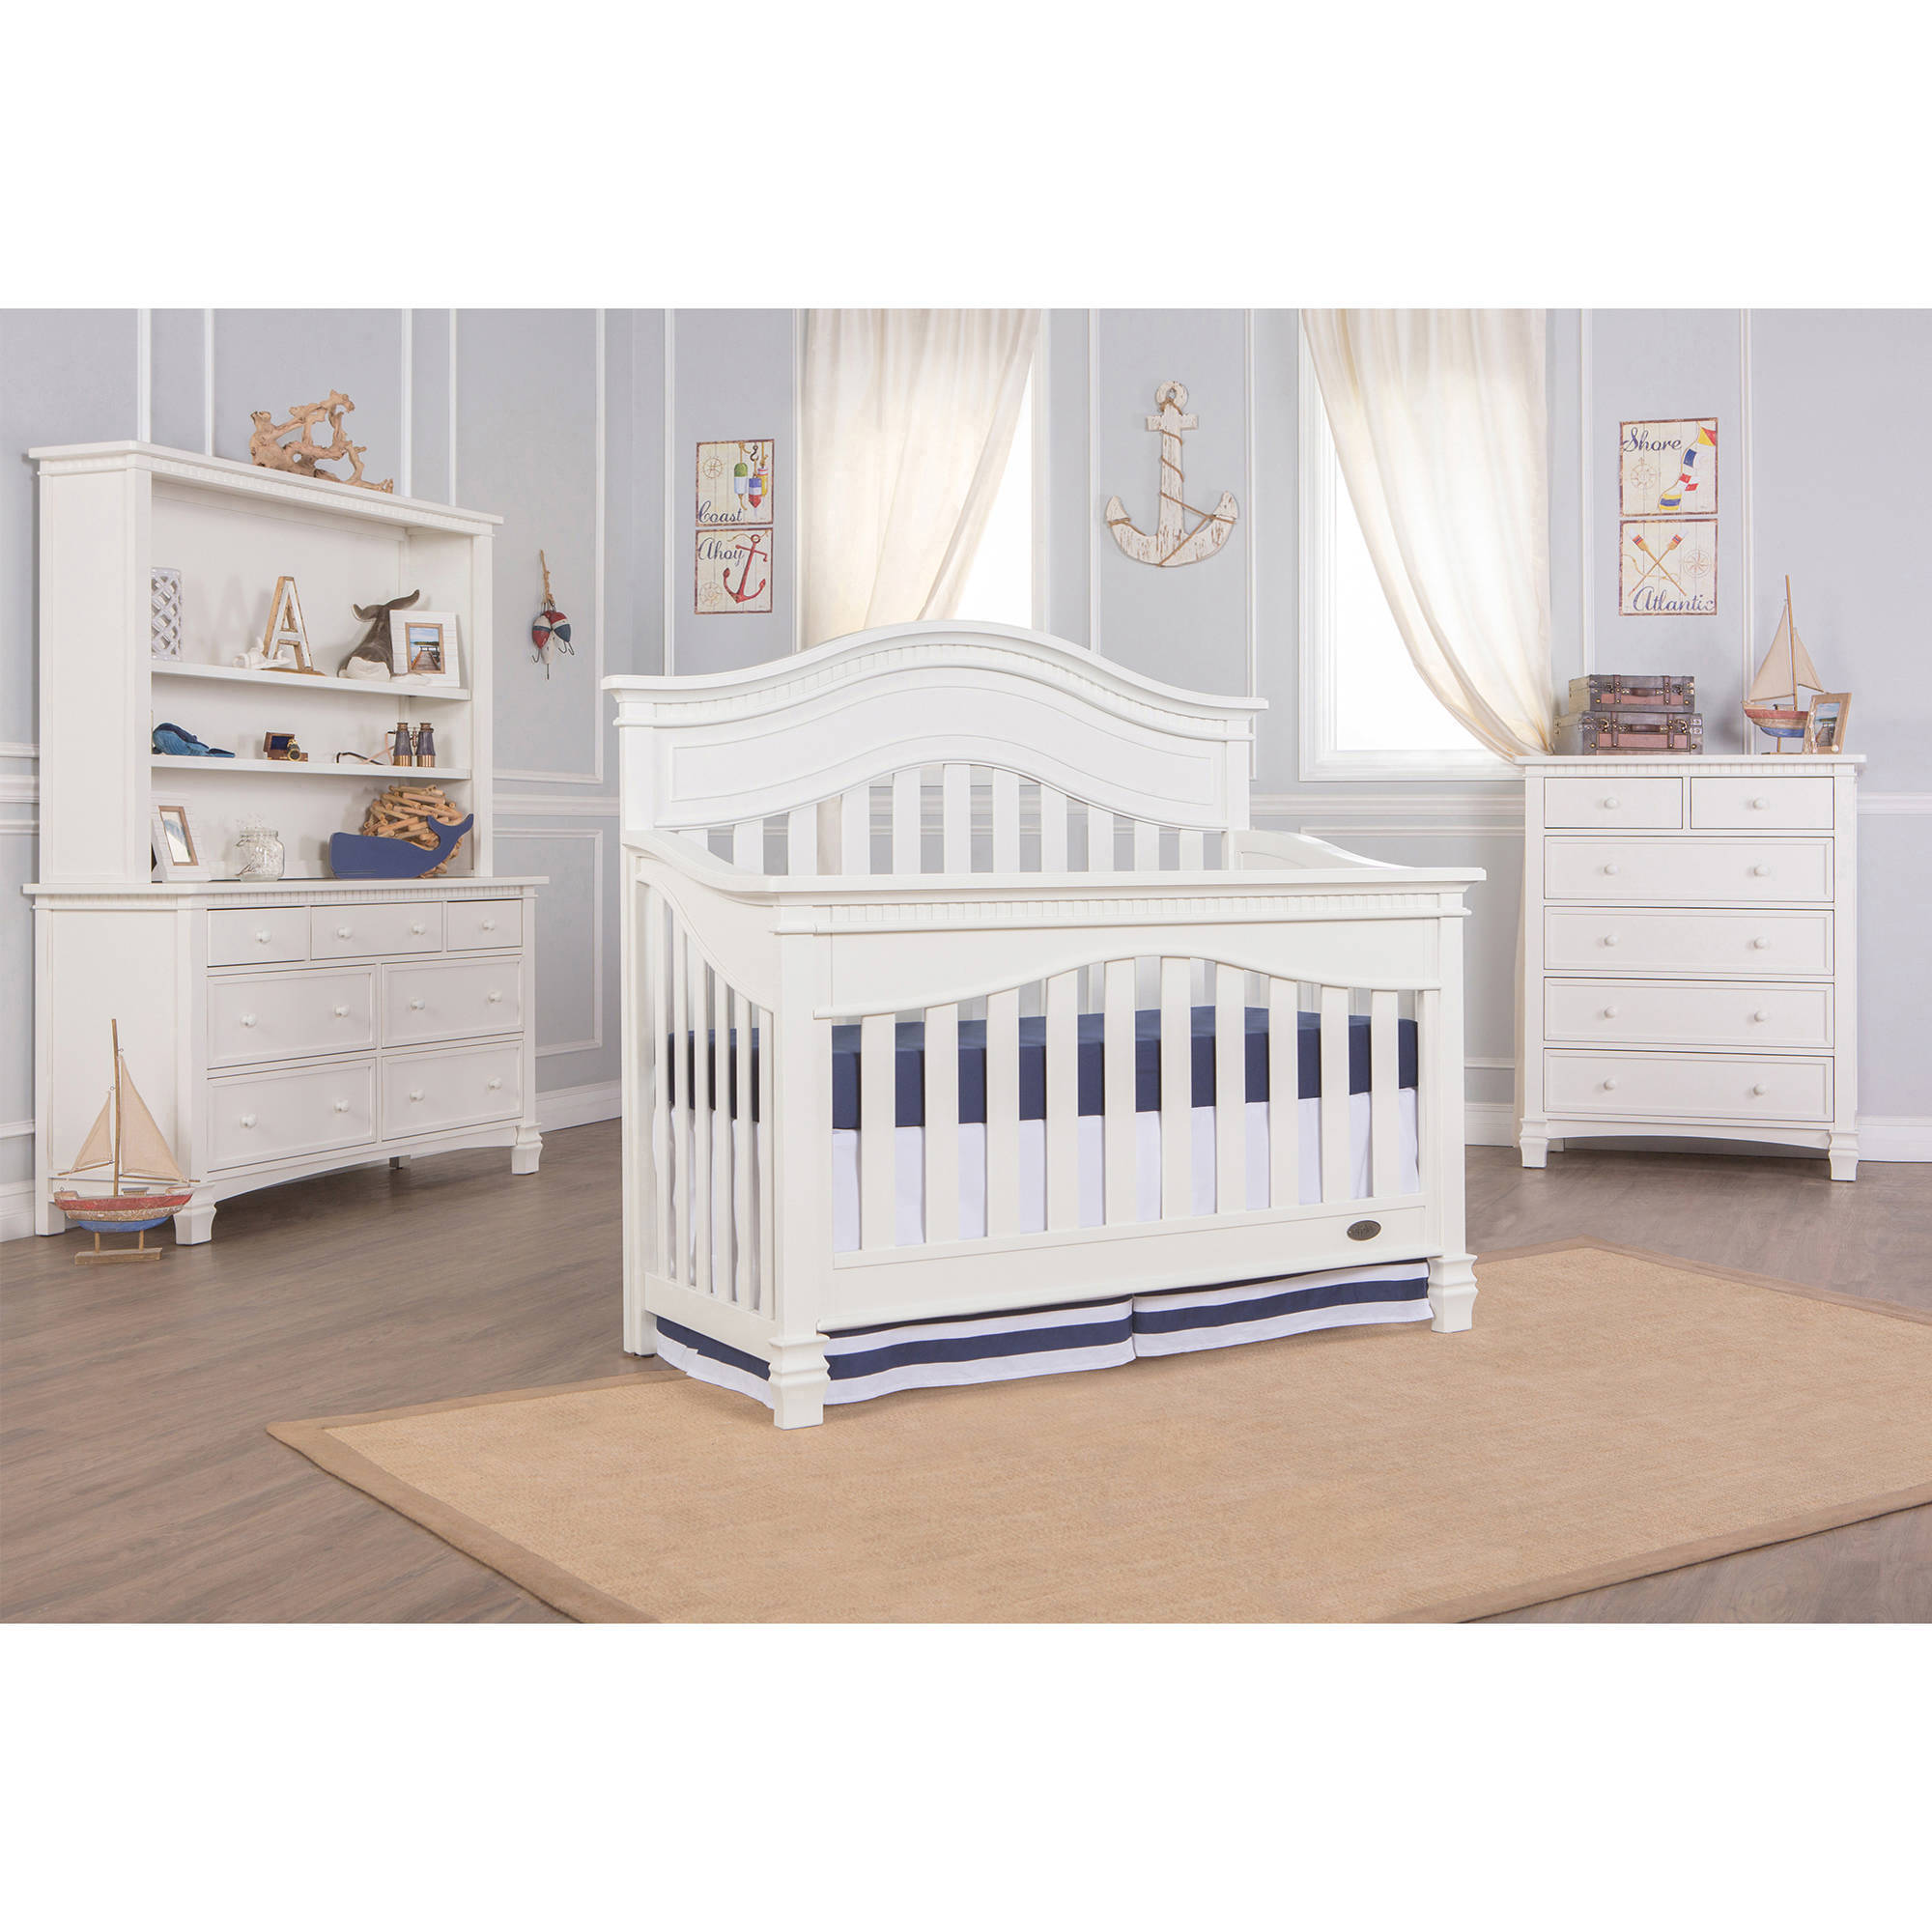 Evolur Cheyenne 5-in-1 Convertible Crib, Choose Your Finish